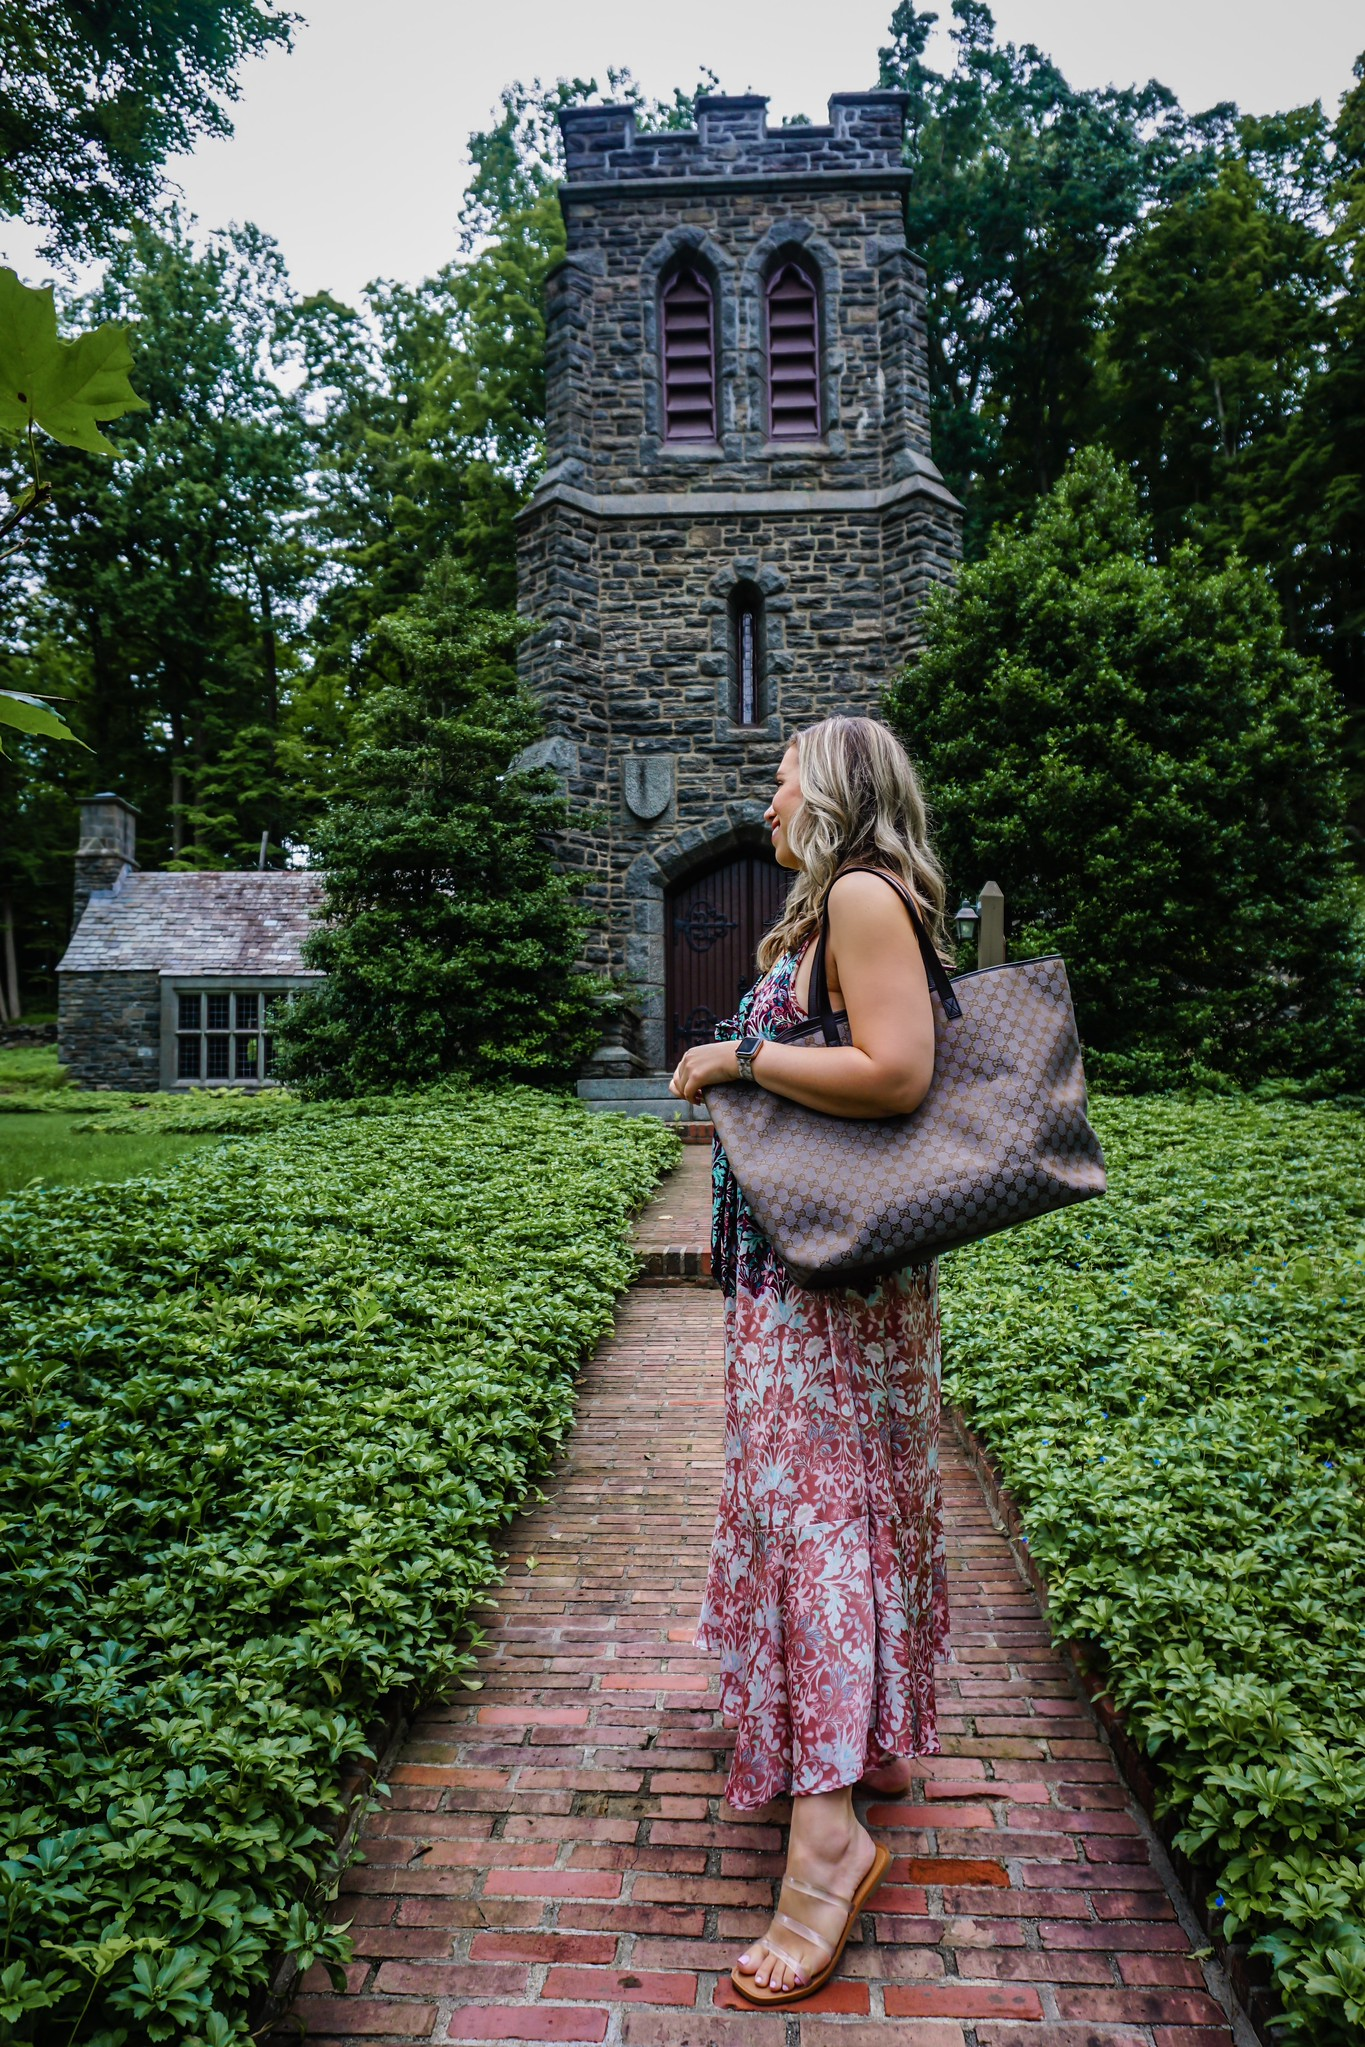 3 Ways to Wear Pre-Loved Designer Bag   Gucci Canvas Tote Bag   LXRandCo   LXR Vintage Luxury Retailer   Vintage Designer Bag Review   Where to Buy Preloved Designer Bags   Free People Metallic Dress Outfit   Summer Outfit Idea